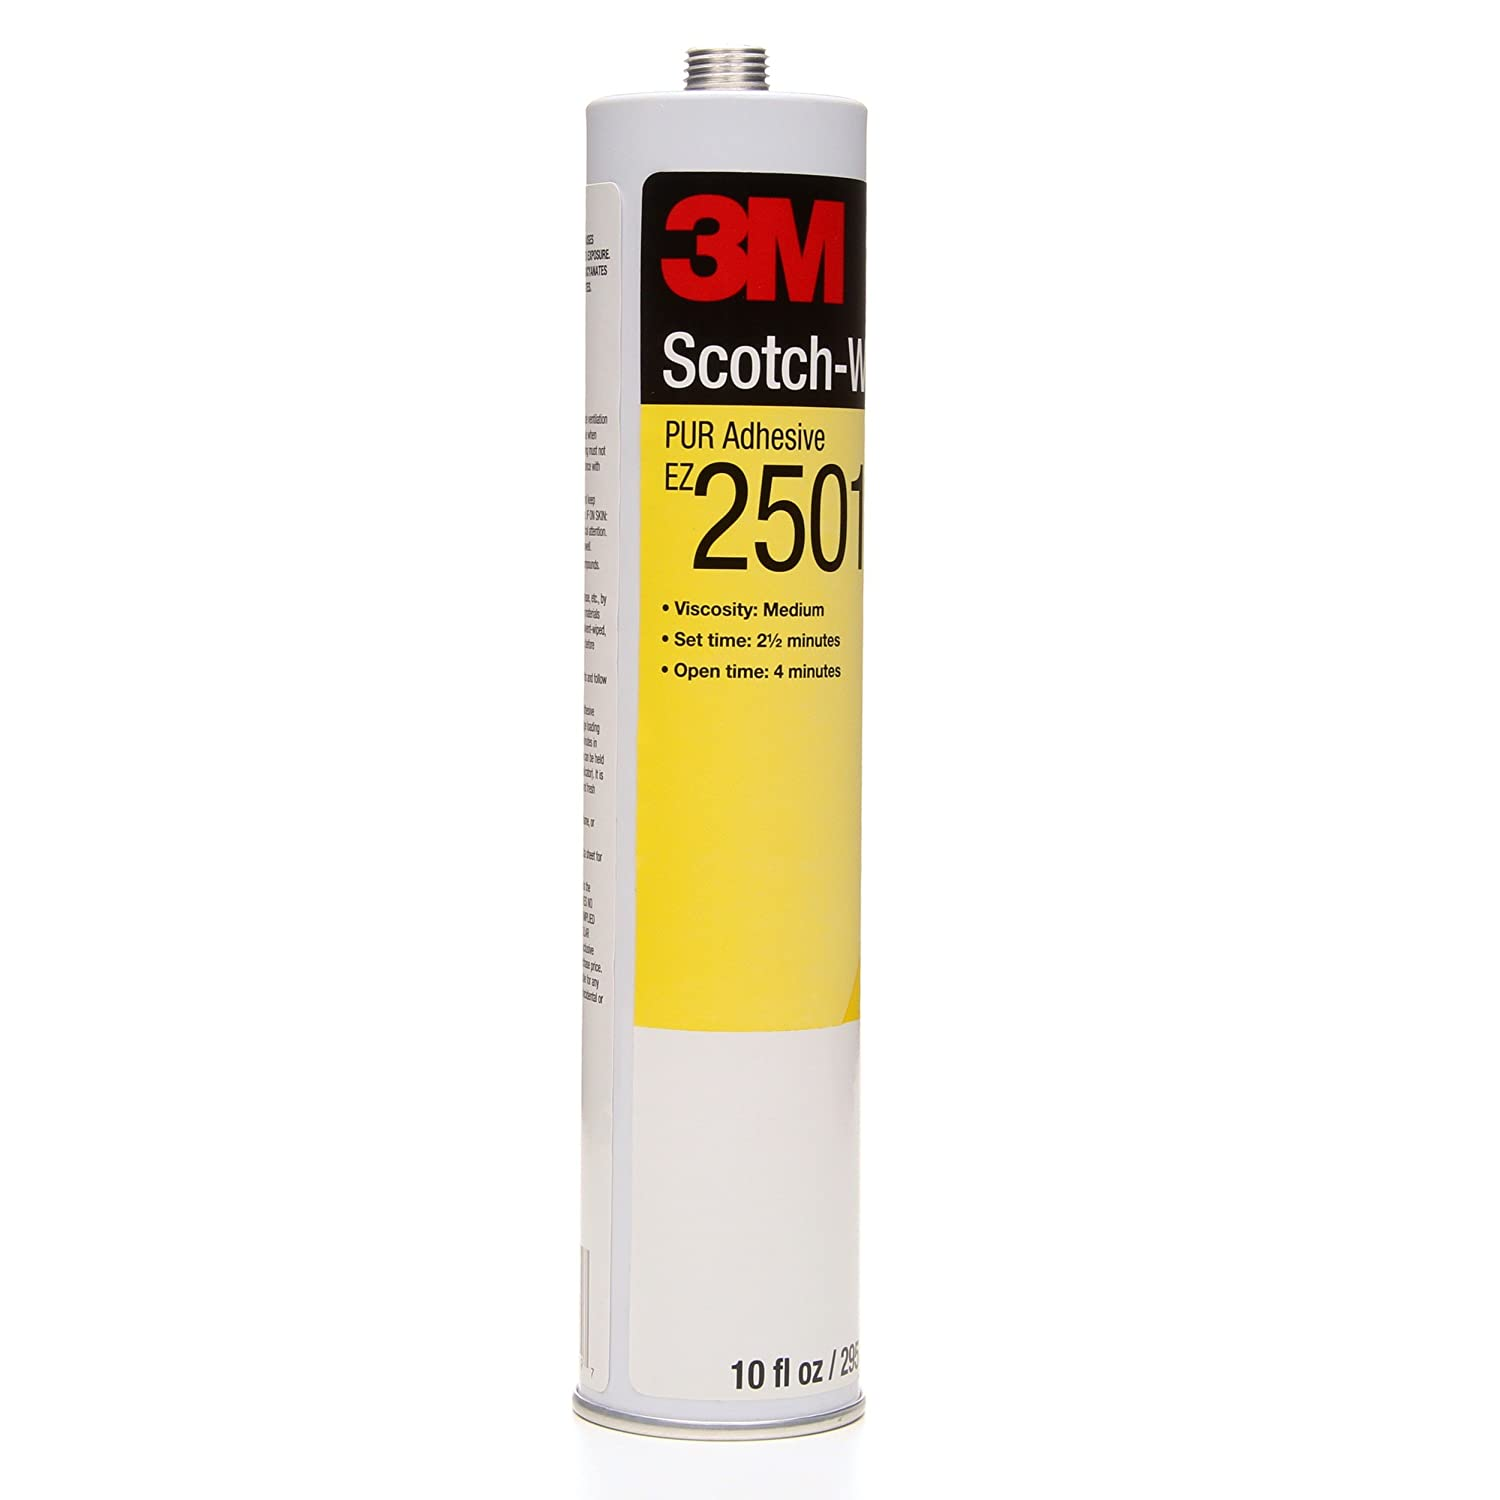 3M Scotch-Weld PUR Easy Adhesive EZ250150, 1/10 gal Cartridge: Spray